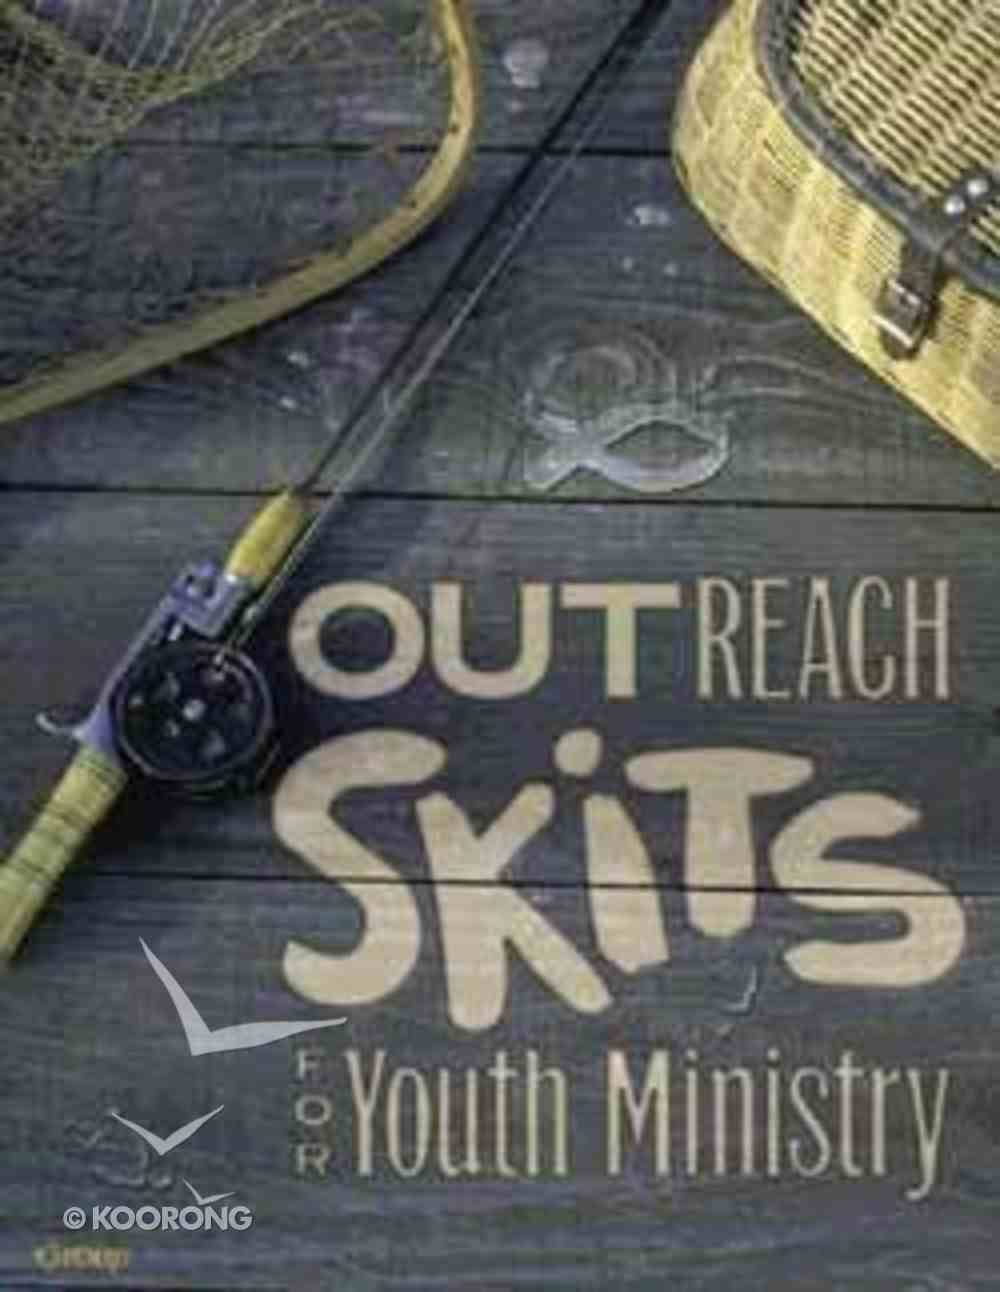 Outreach Skits For Youth Ministry Paperback